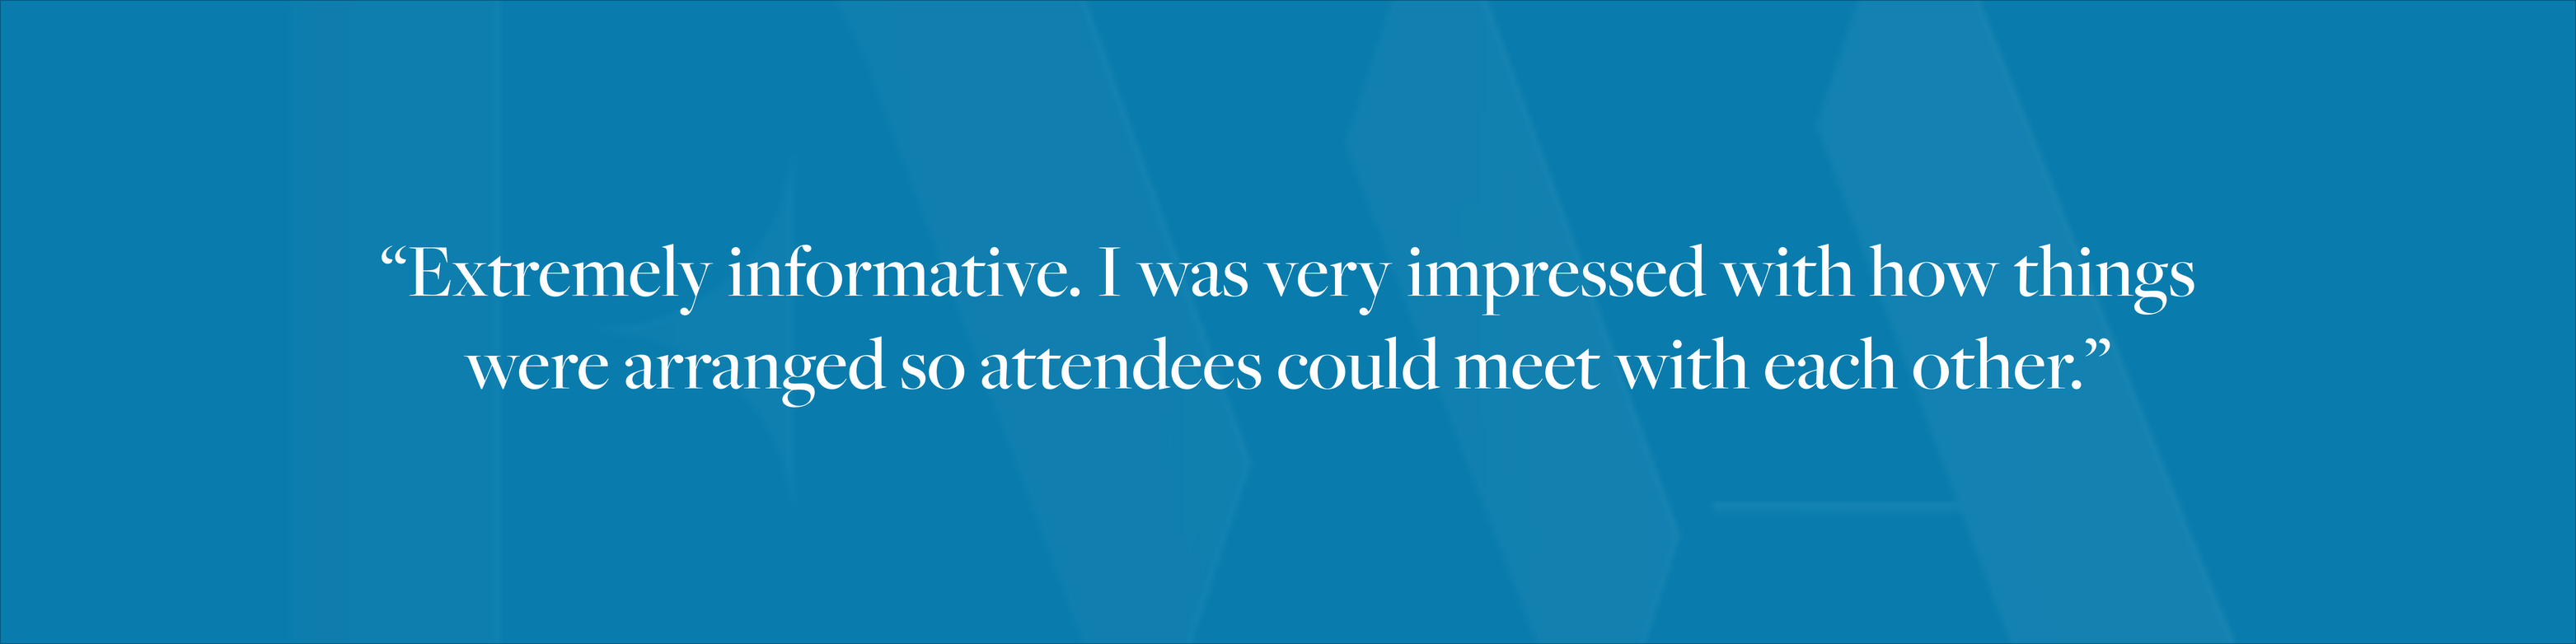 """Extremely informative. I was very impressed with how things were arranged so attendees could meet with each other."""